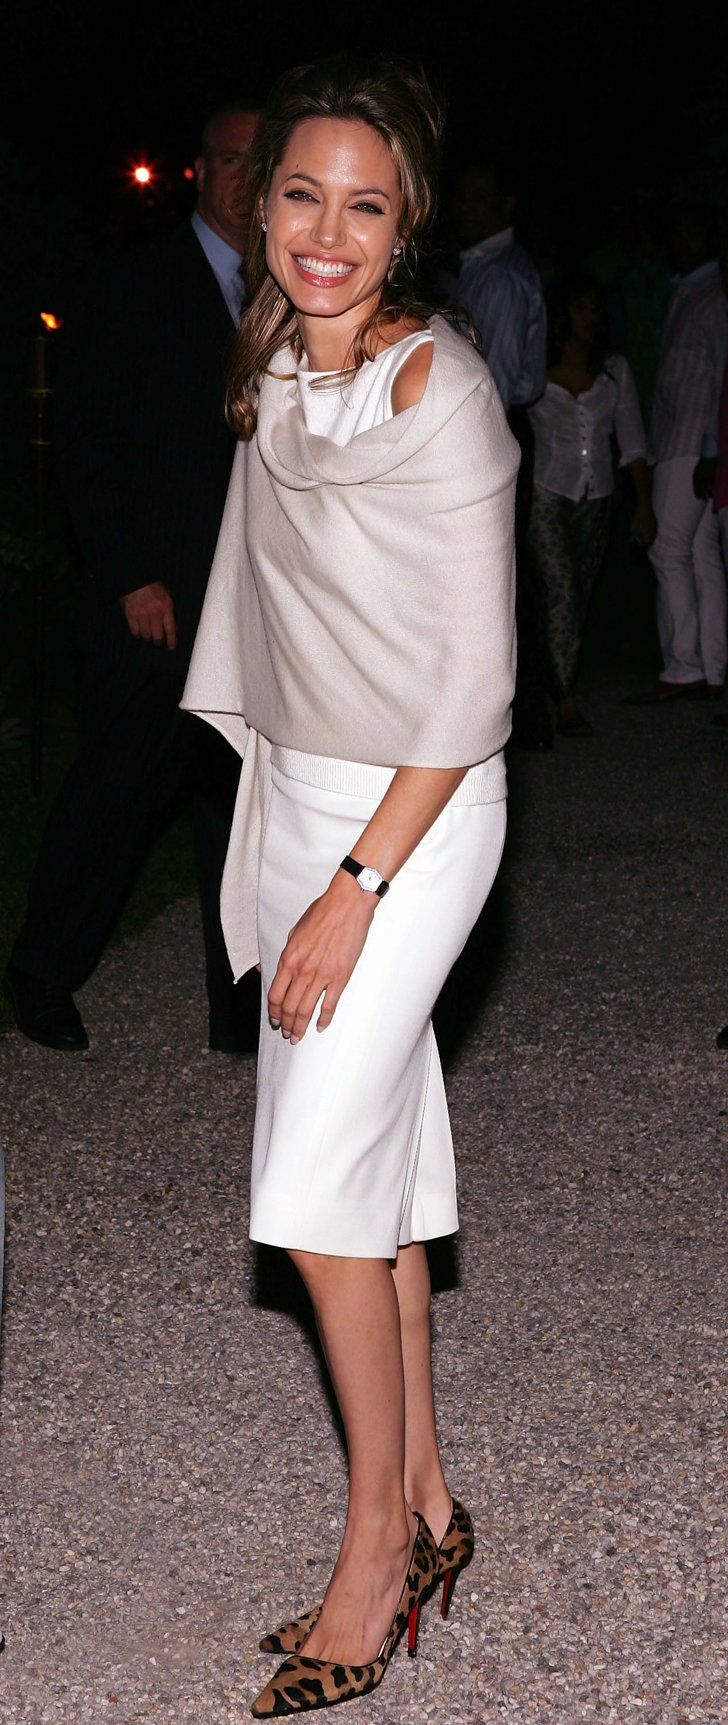 Pin for Later: 52 Reasons to Celebrate Angelina Jolie's Red Carpet Evolution Angelina Jolie's Red Carpet Transformation She looked pristine in a little white sheath and pop of print, via leopard shoes, in 2005.